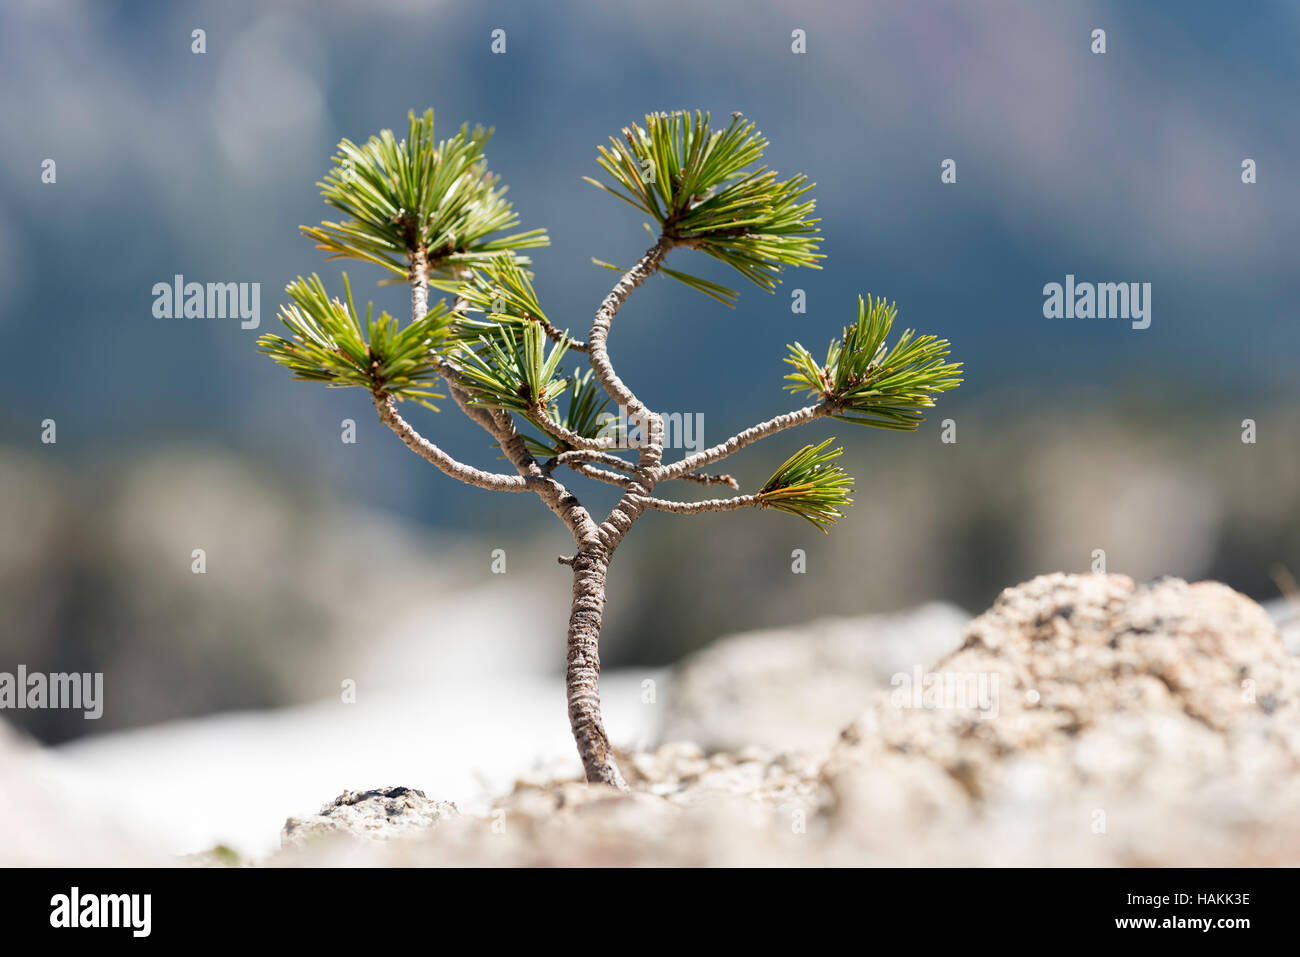 Whitebark pine seedling growing in the high country of Oregon's Wallowa Mountains. - Stock Image